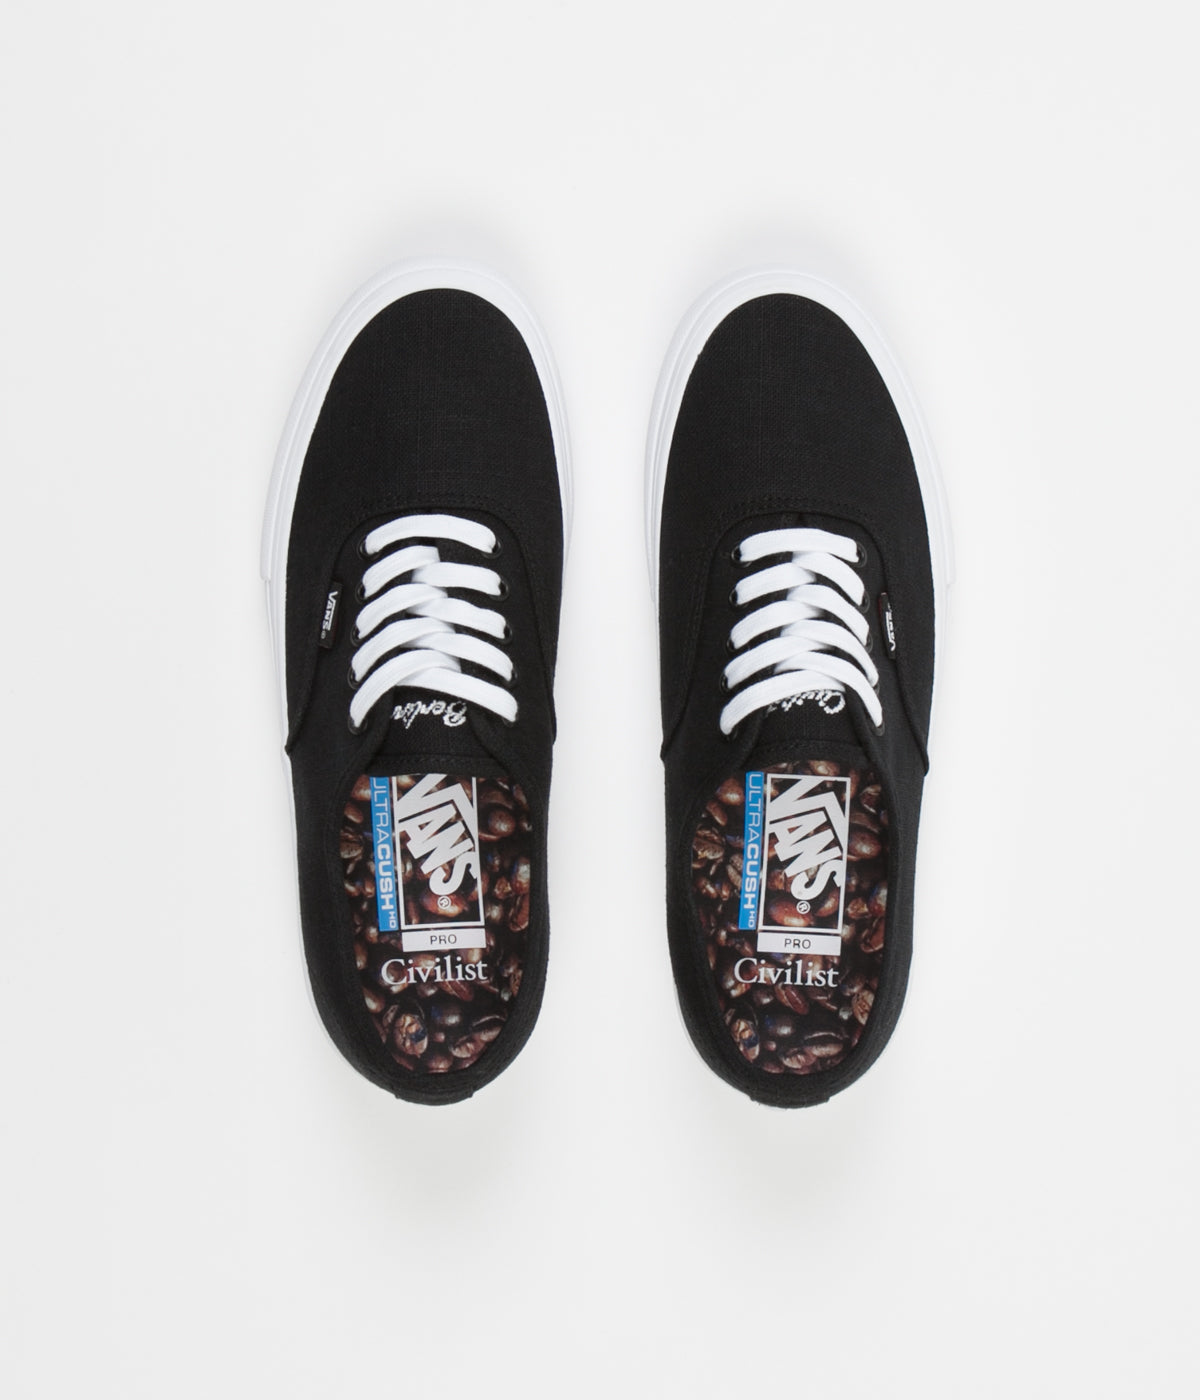 303221e1c853d1 Vans x Civilist Authentic Pro Shoes - Black   True White ...